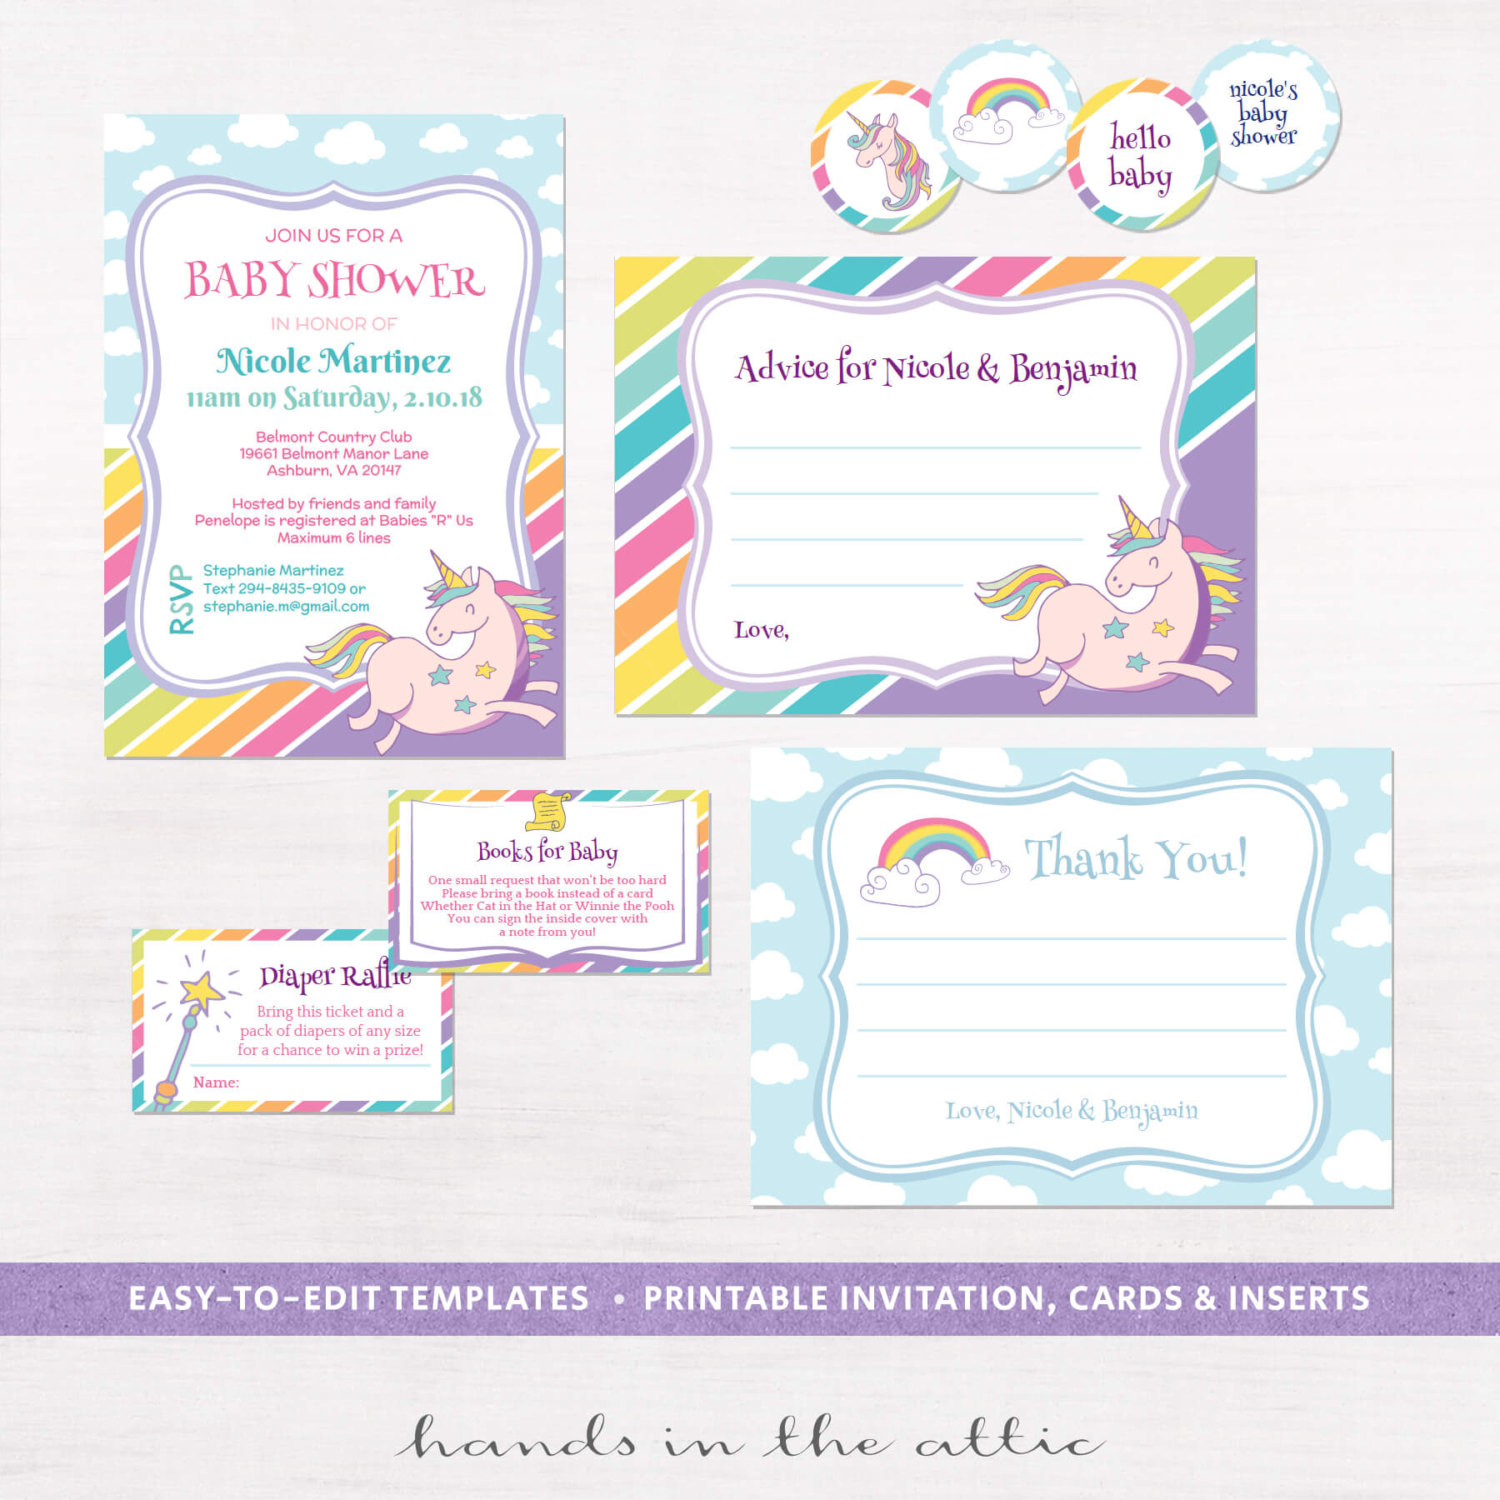 unicorn rainbows baby shower invitation kit hands in the attic. Black Bedroom Furniture Sets. Home Design Ideas